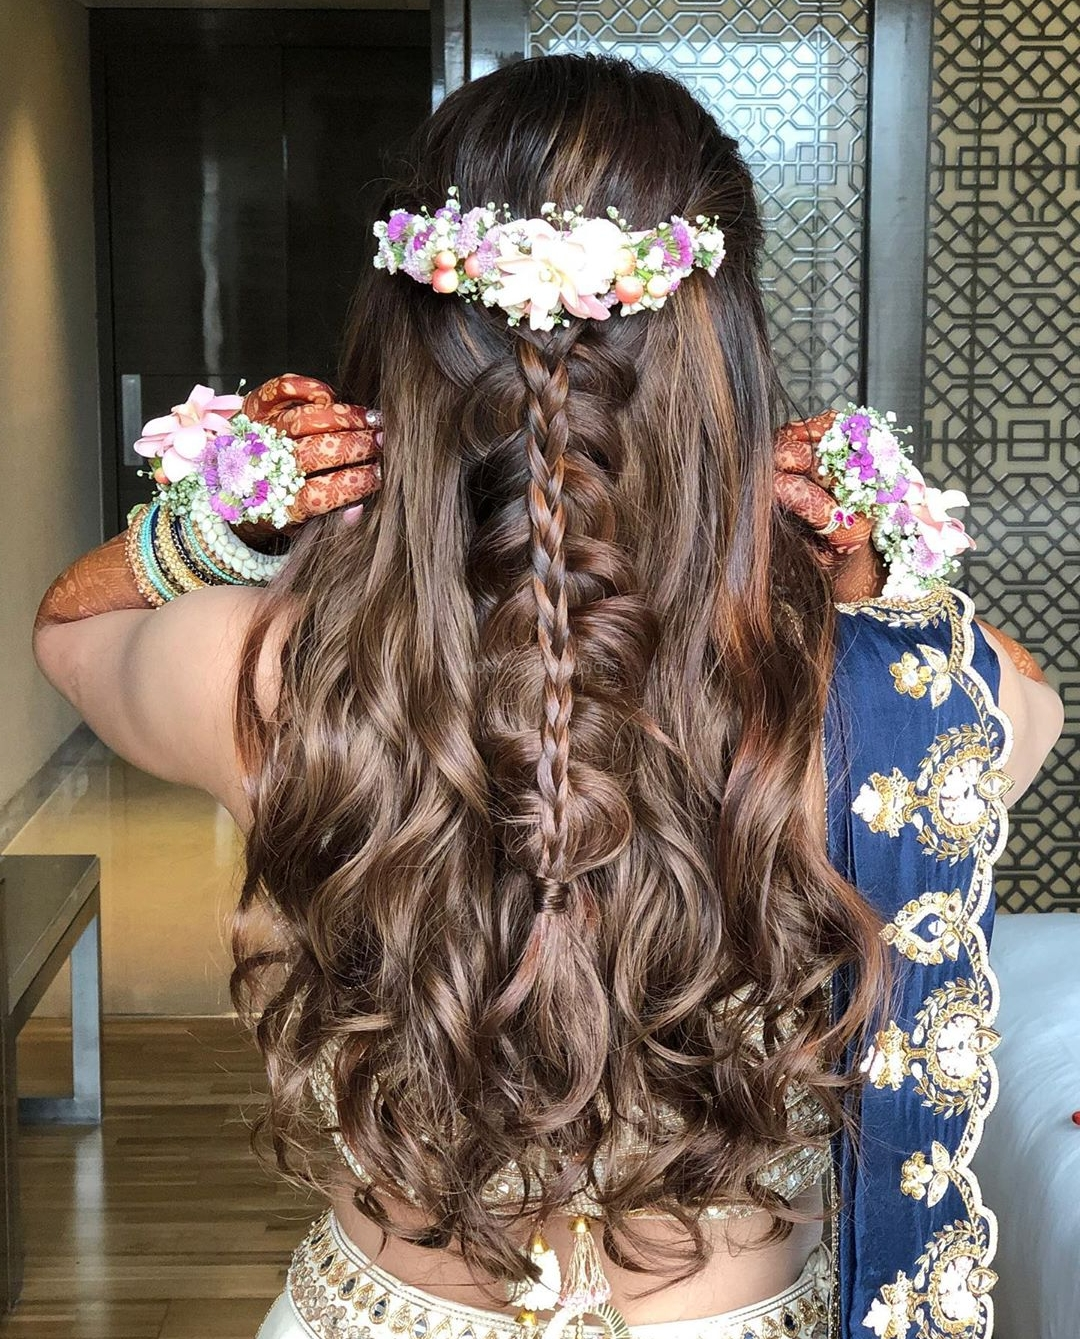 100 Most Stunning Indian Brides That Set Indian Wedding 30+ Amazing Indian Curly Hairstyles For Medium Length Hair